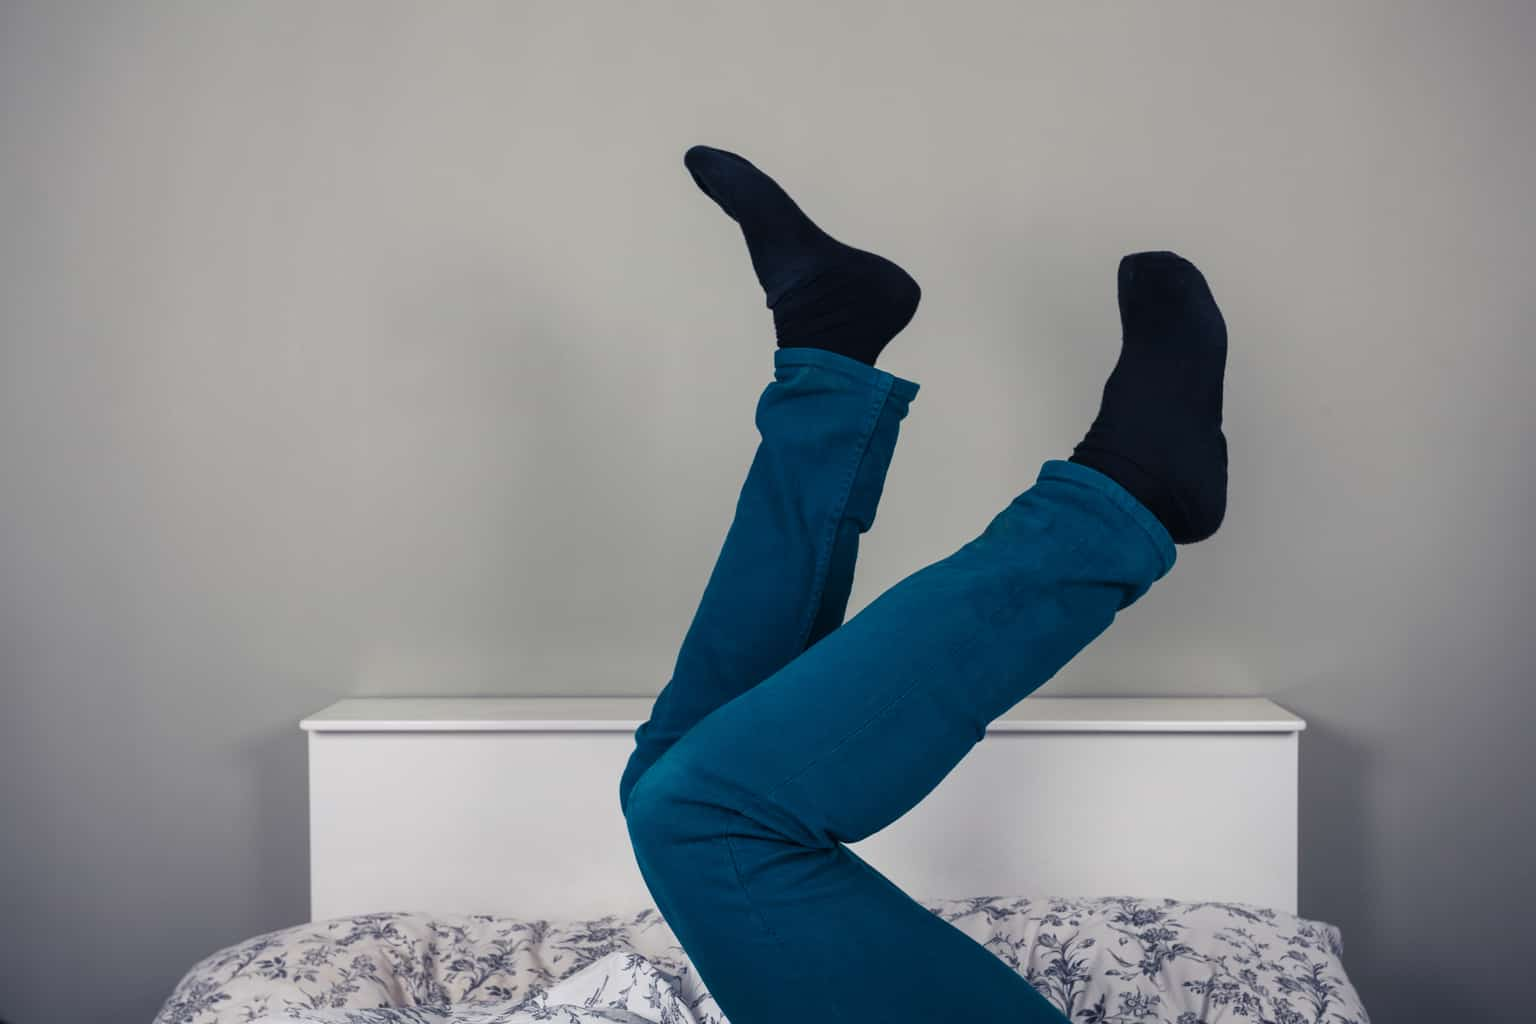 Restless leg syndrome caused by high estrogen and cortisol levels